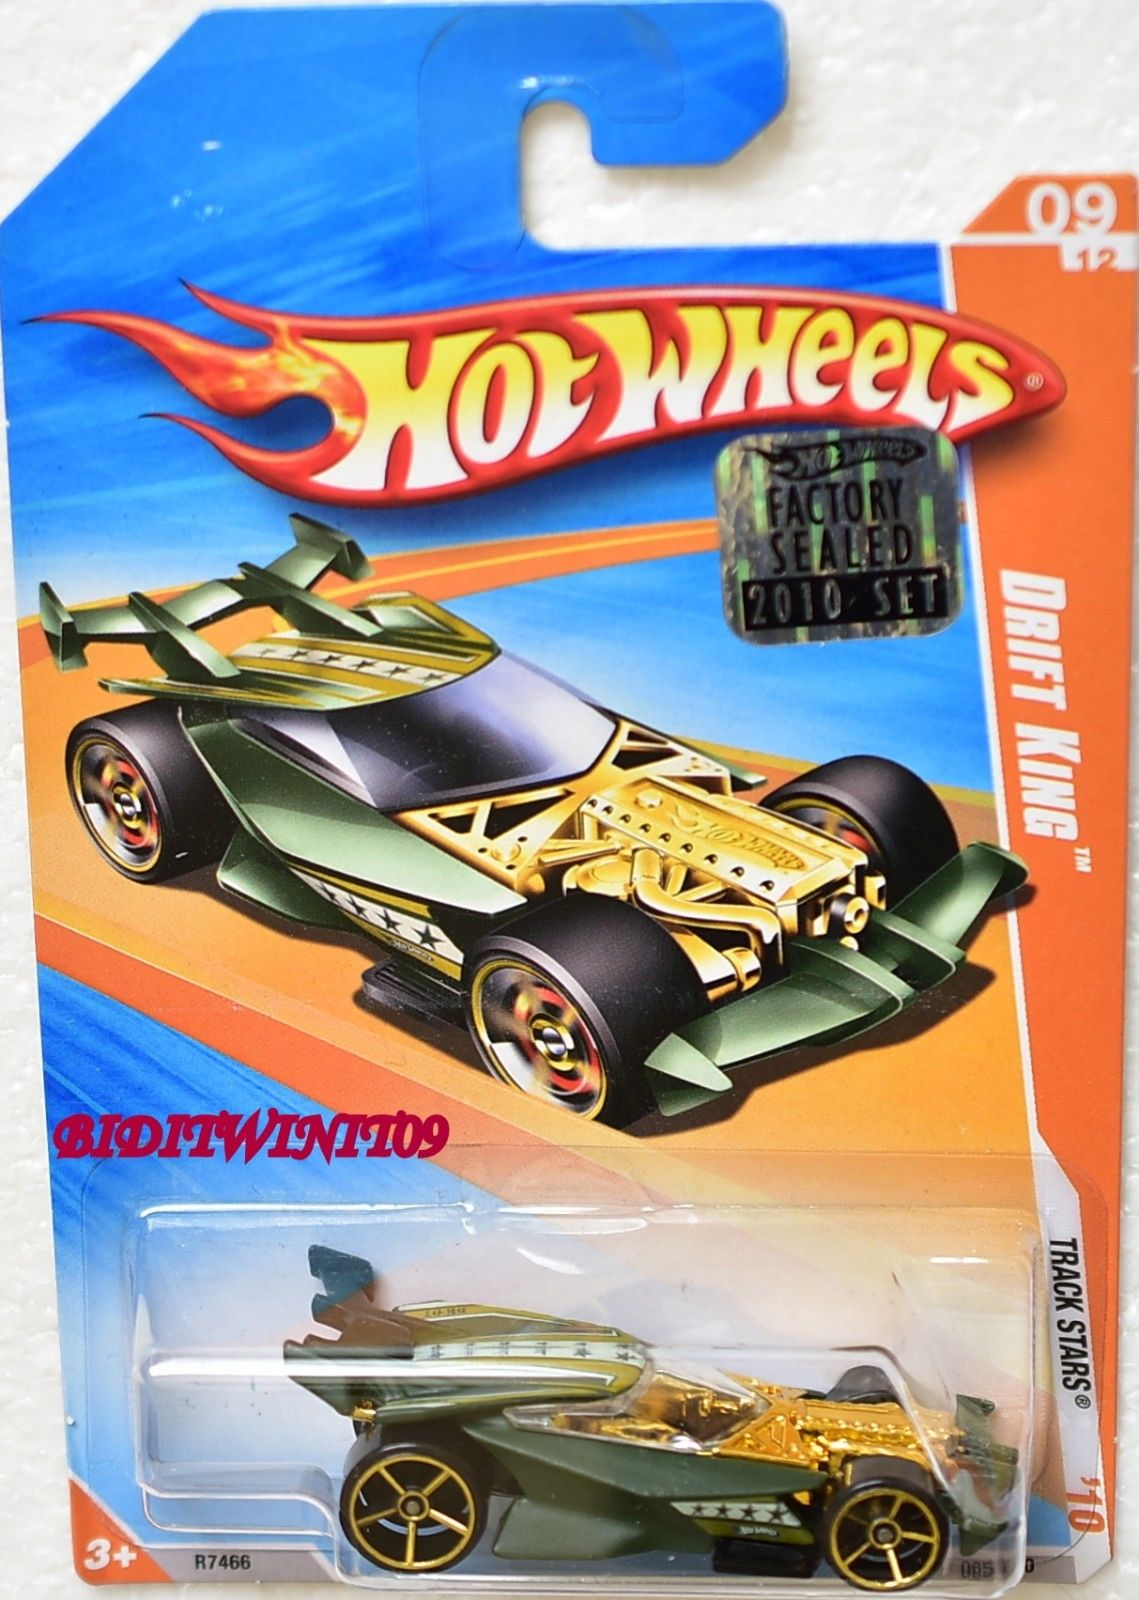 HOT WHEELS 2010 TRACK STARS DRIFT KING #09/12 FACTORY SEALED